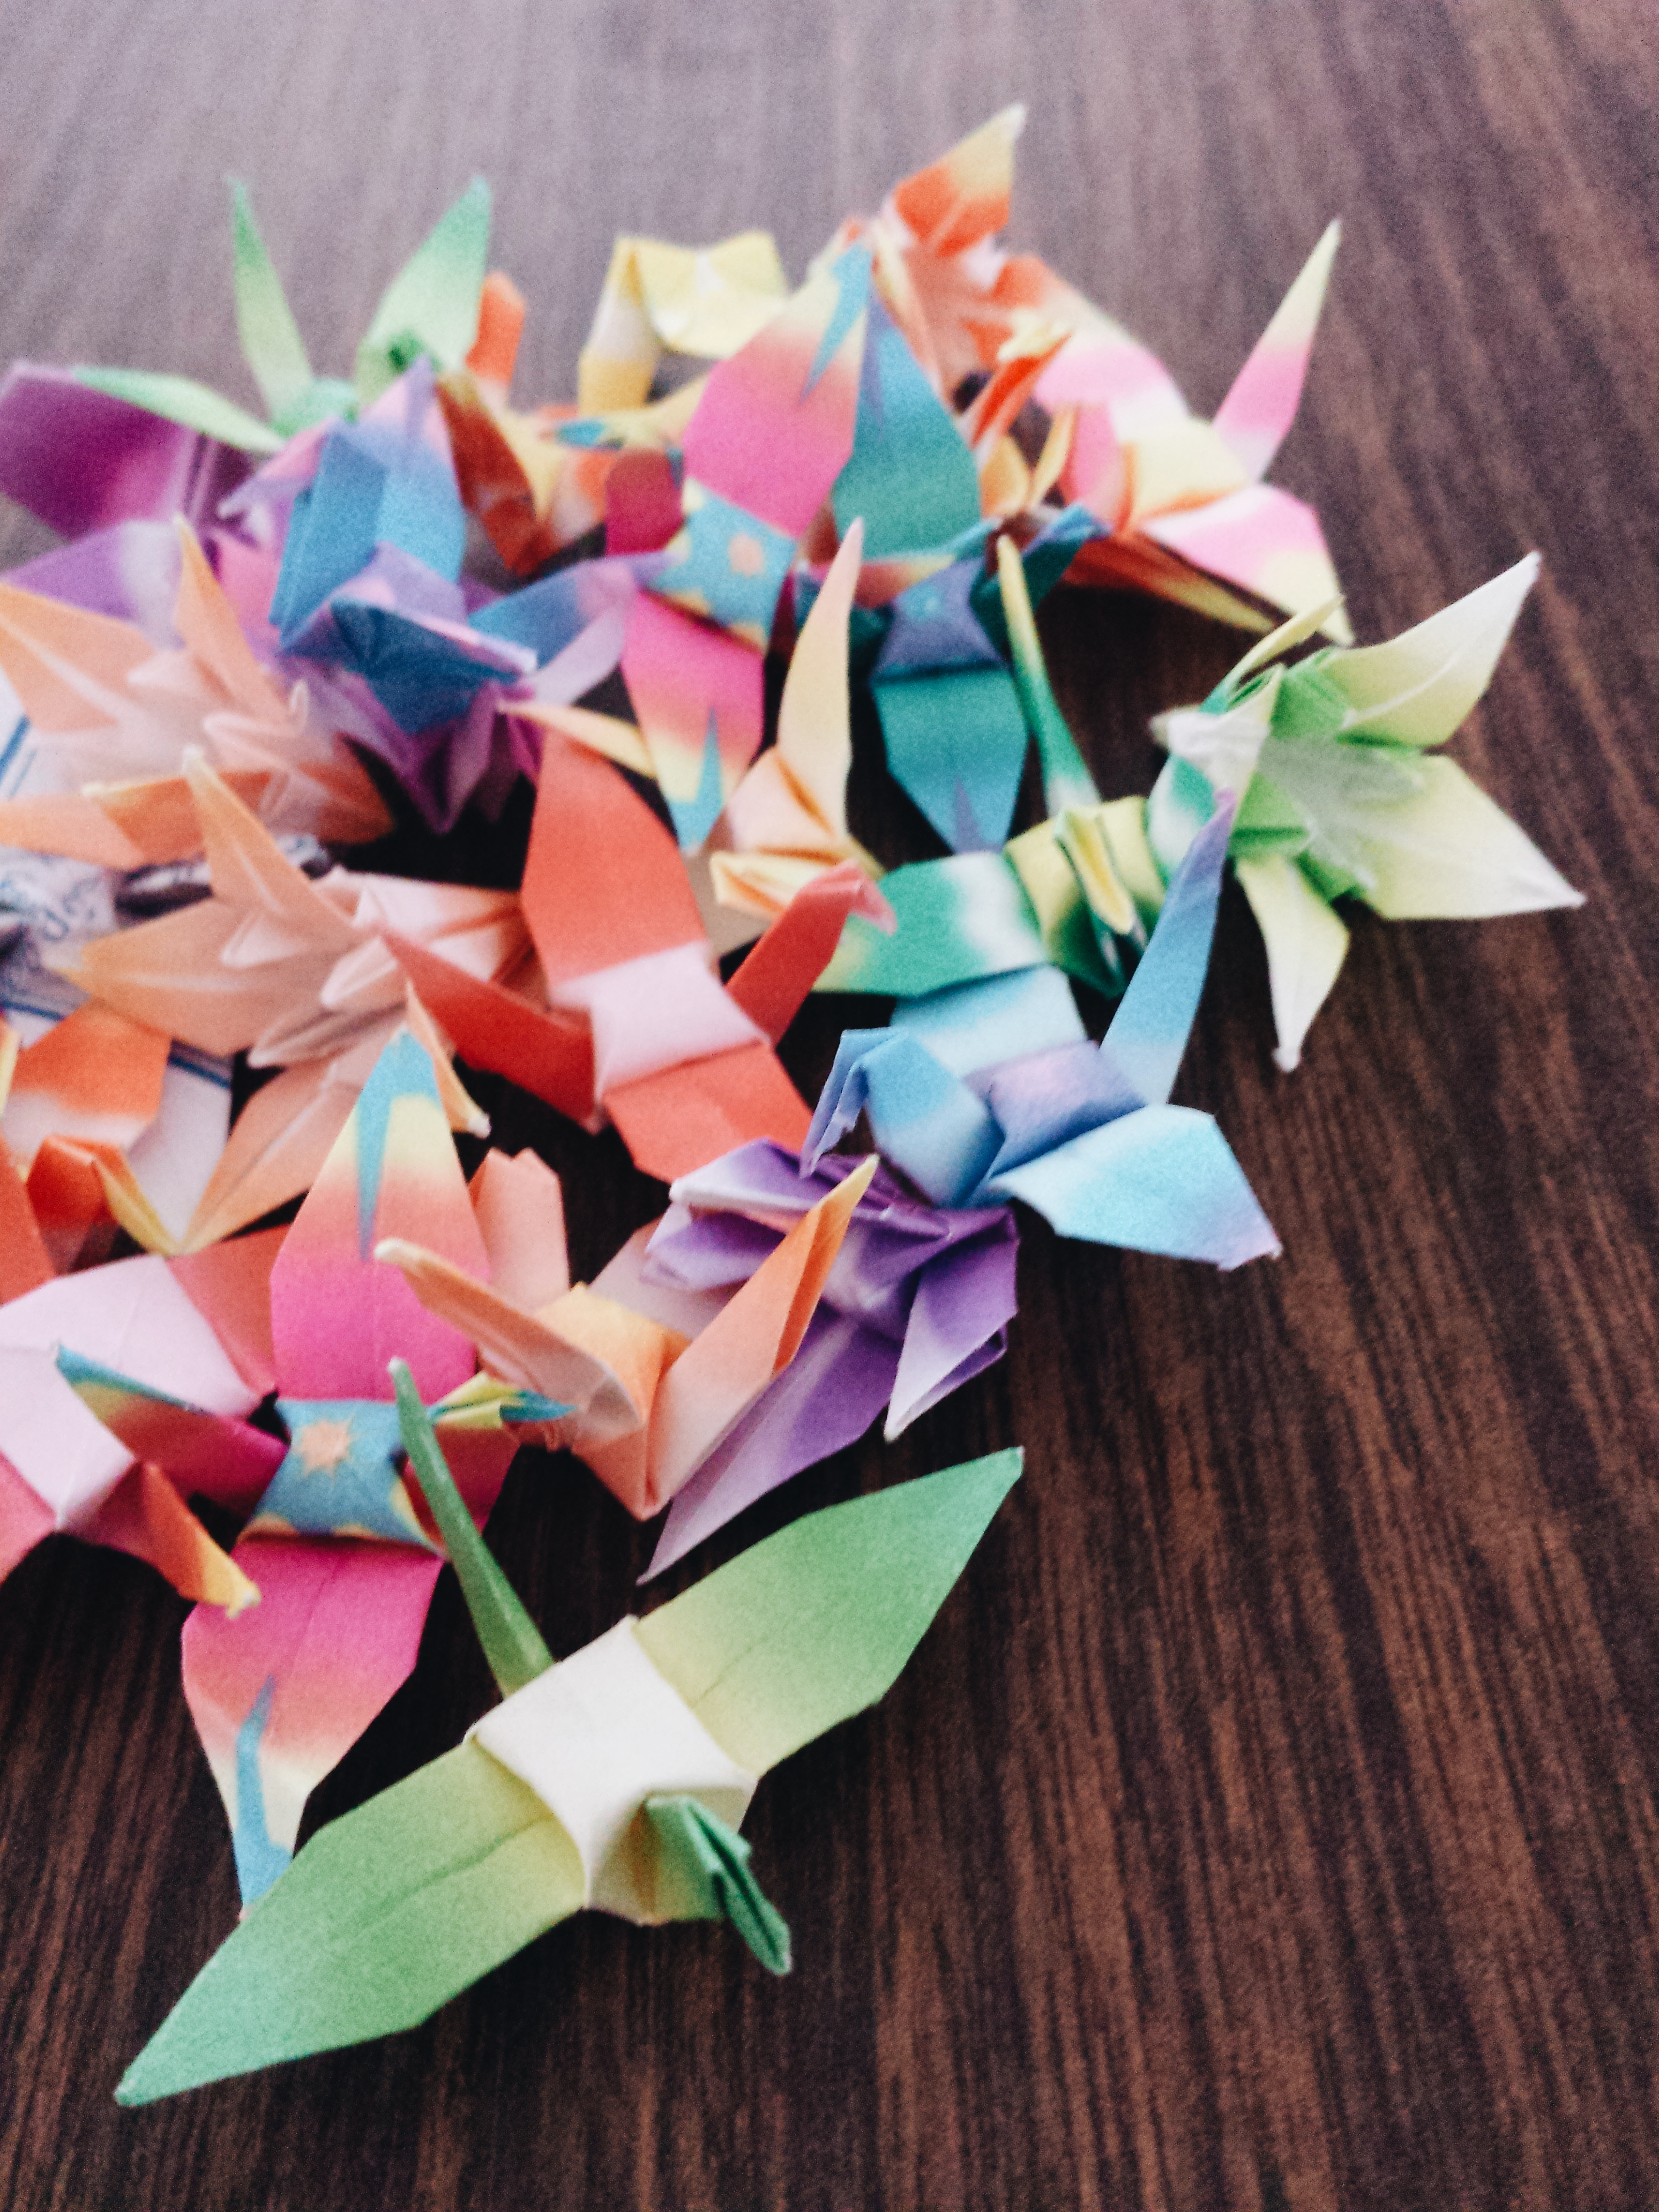 Colourful origami cranes and flowers